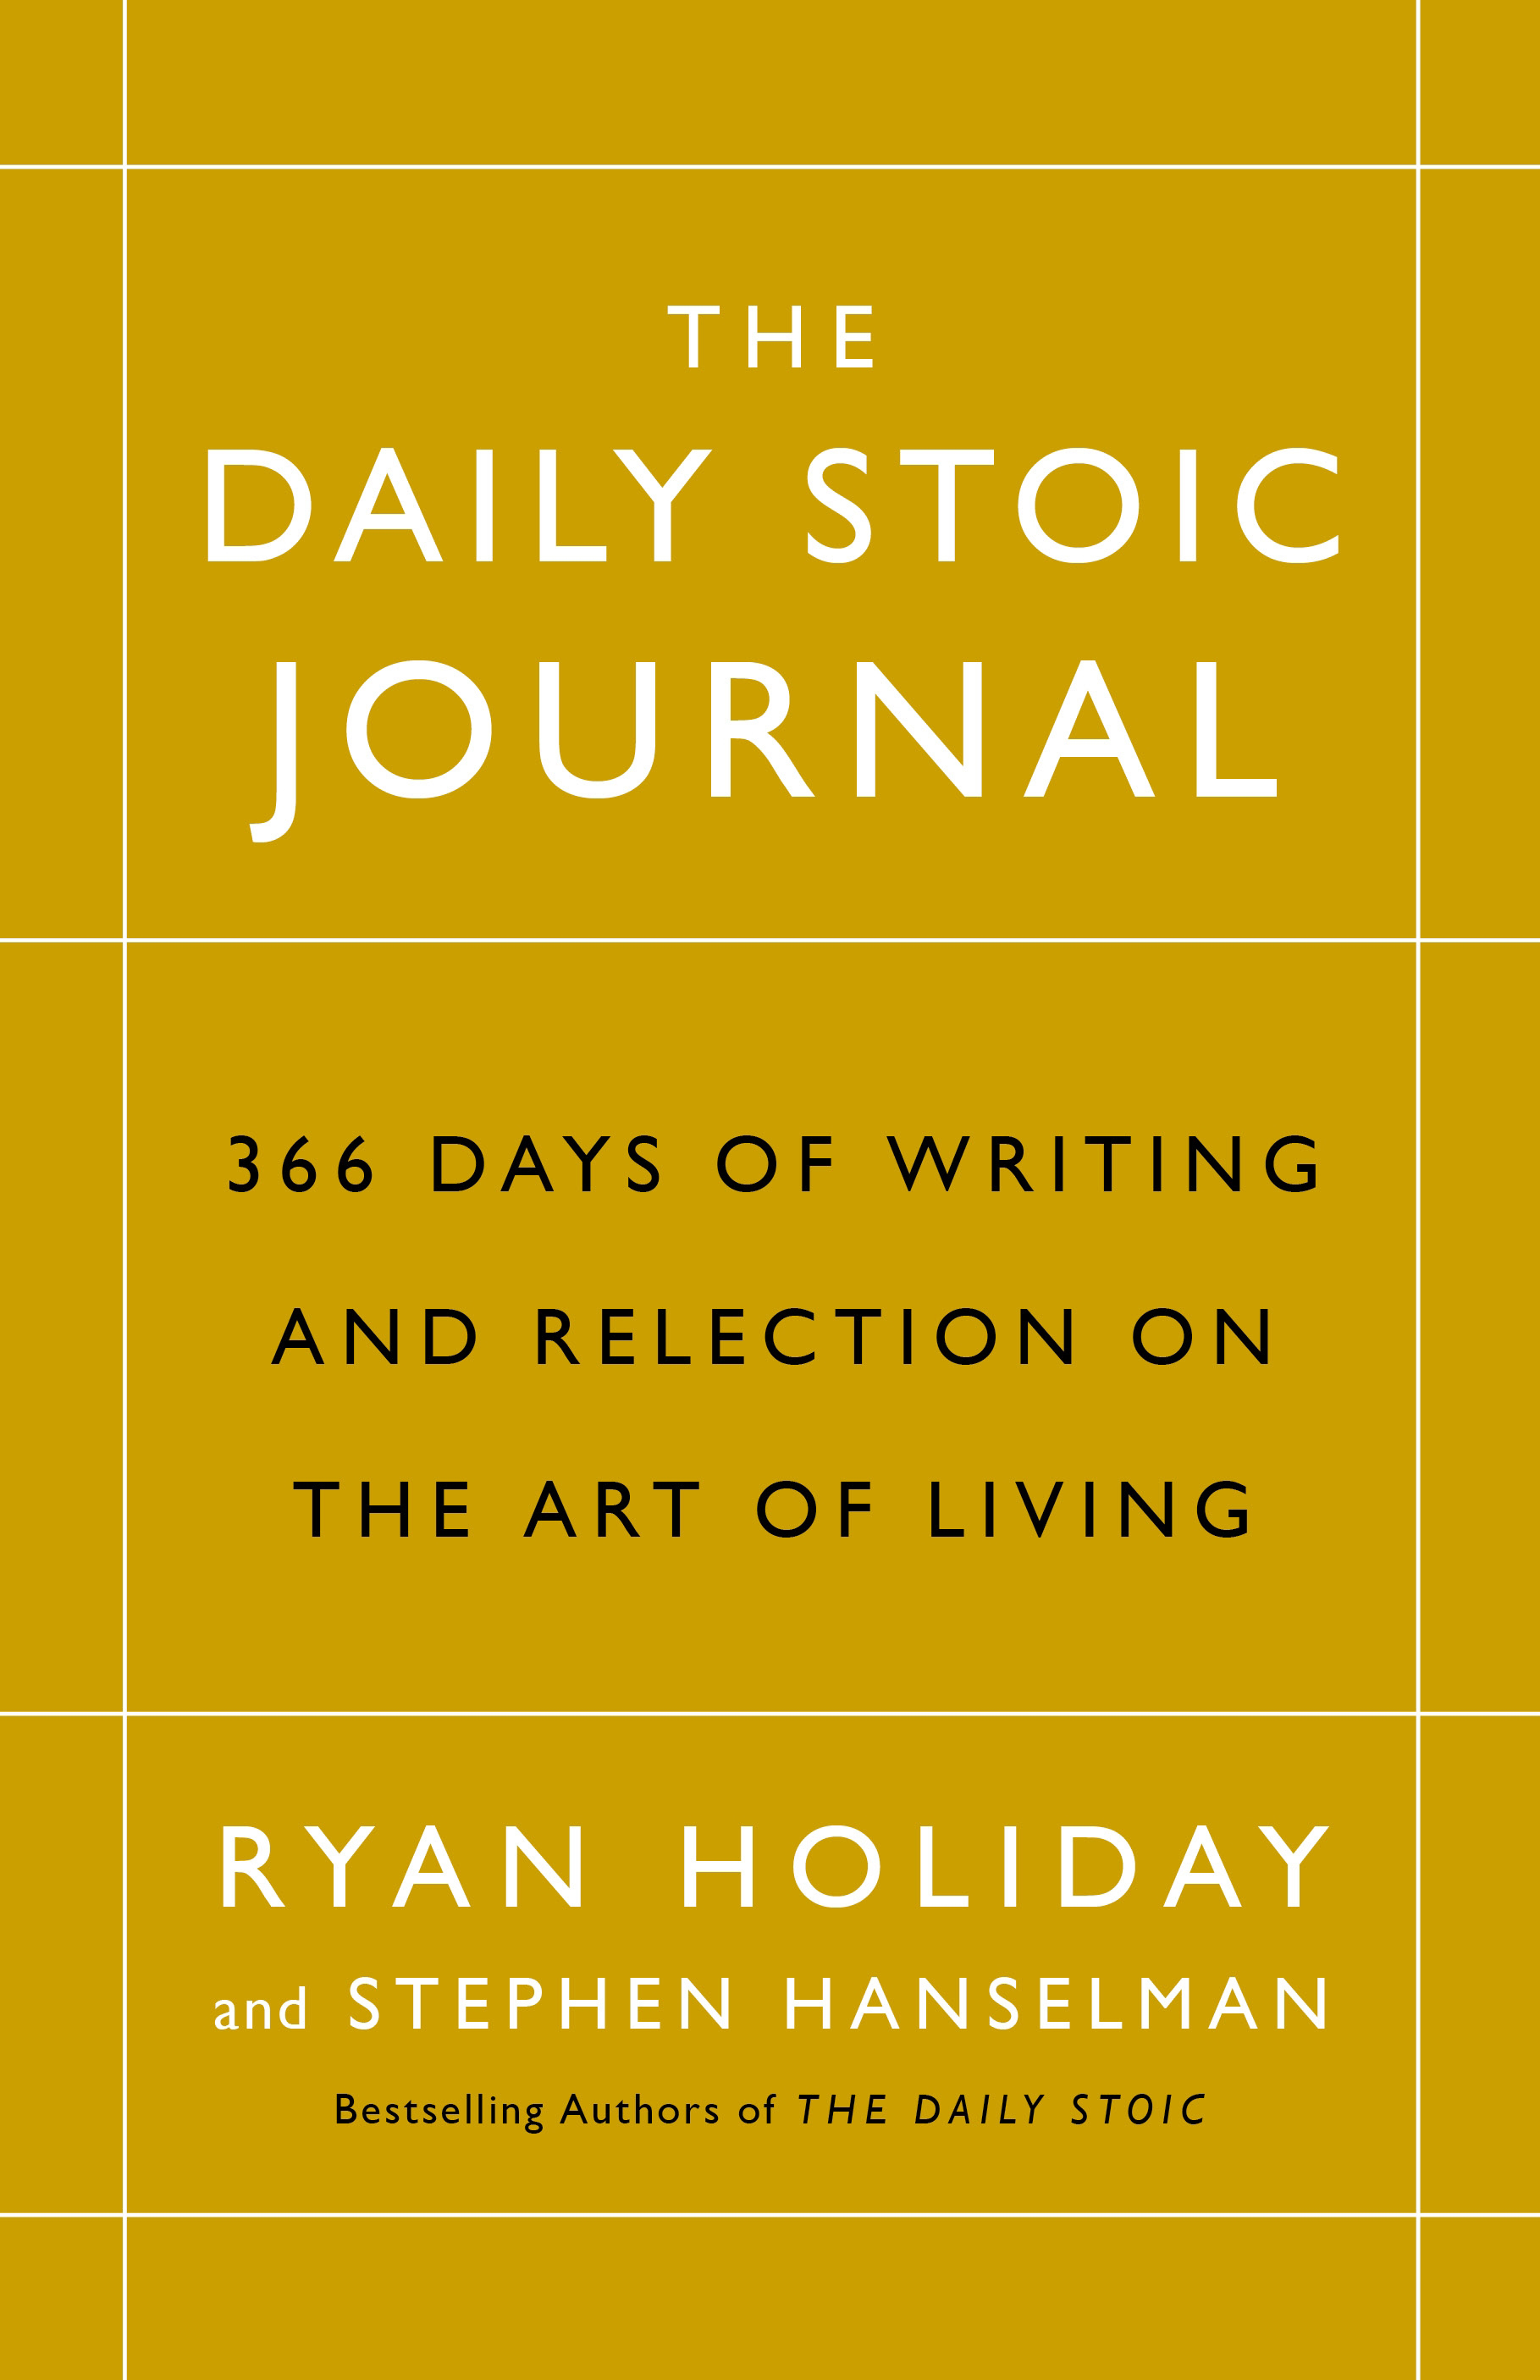 The Daily Stoic Journal366 Days of Writing and Reflecting on the Art o...